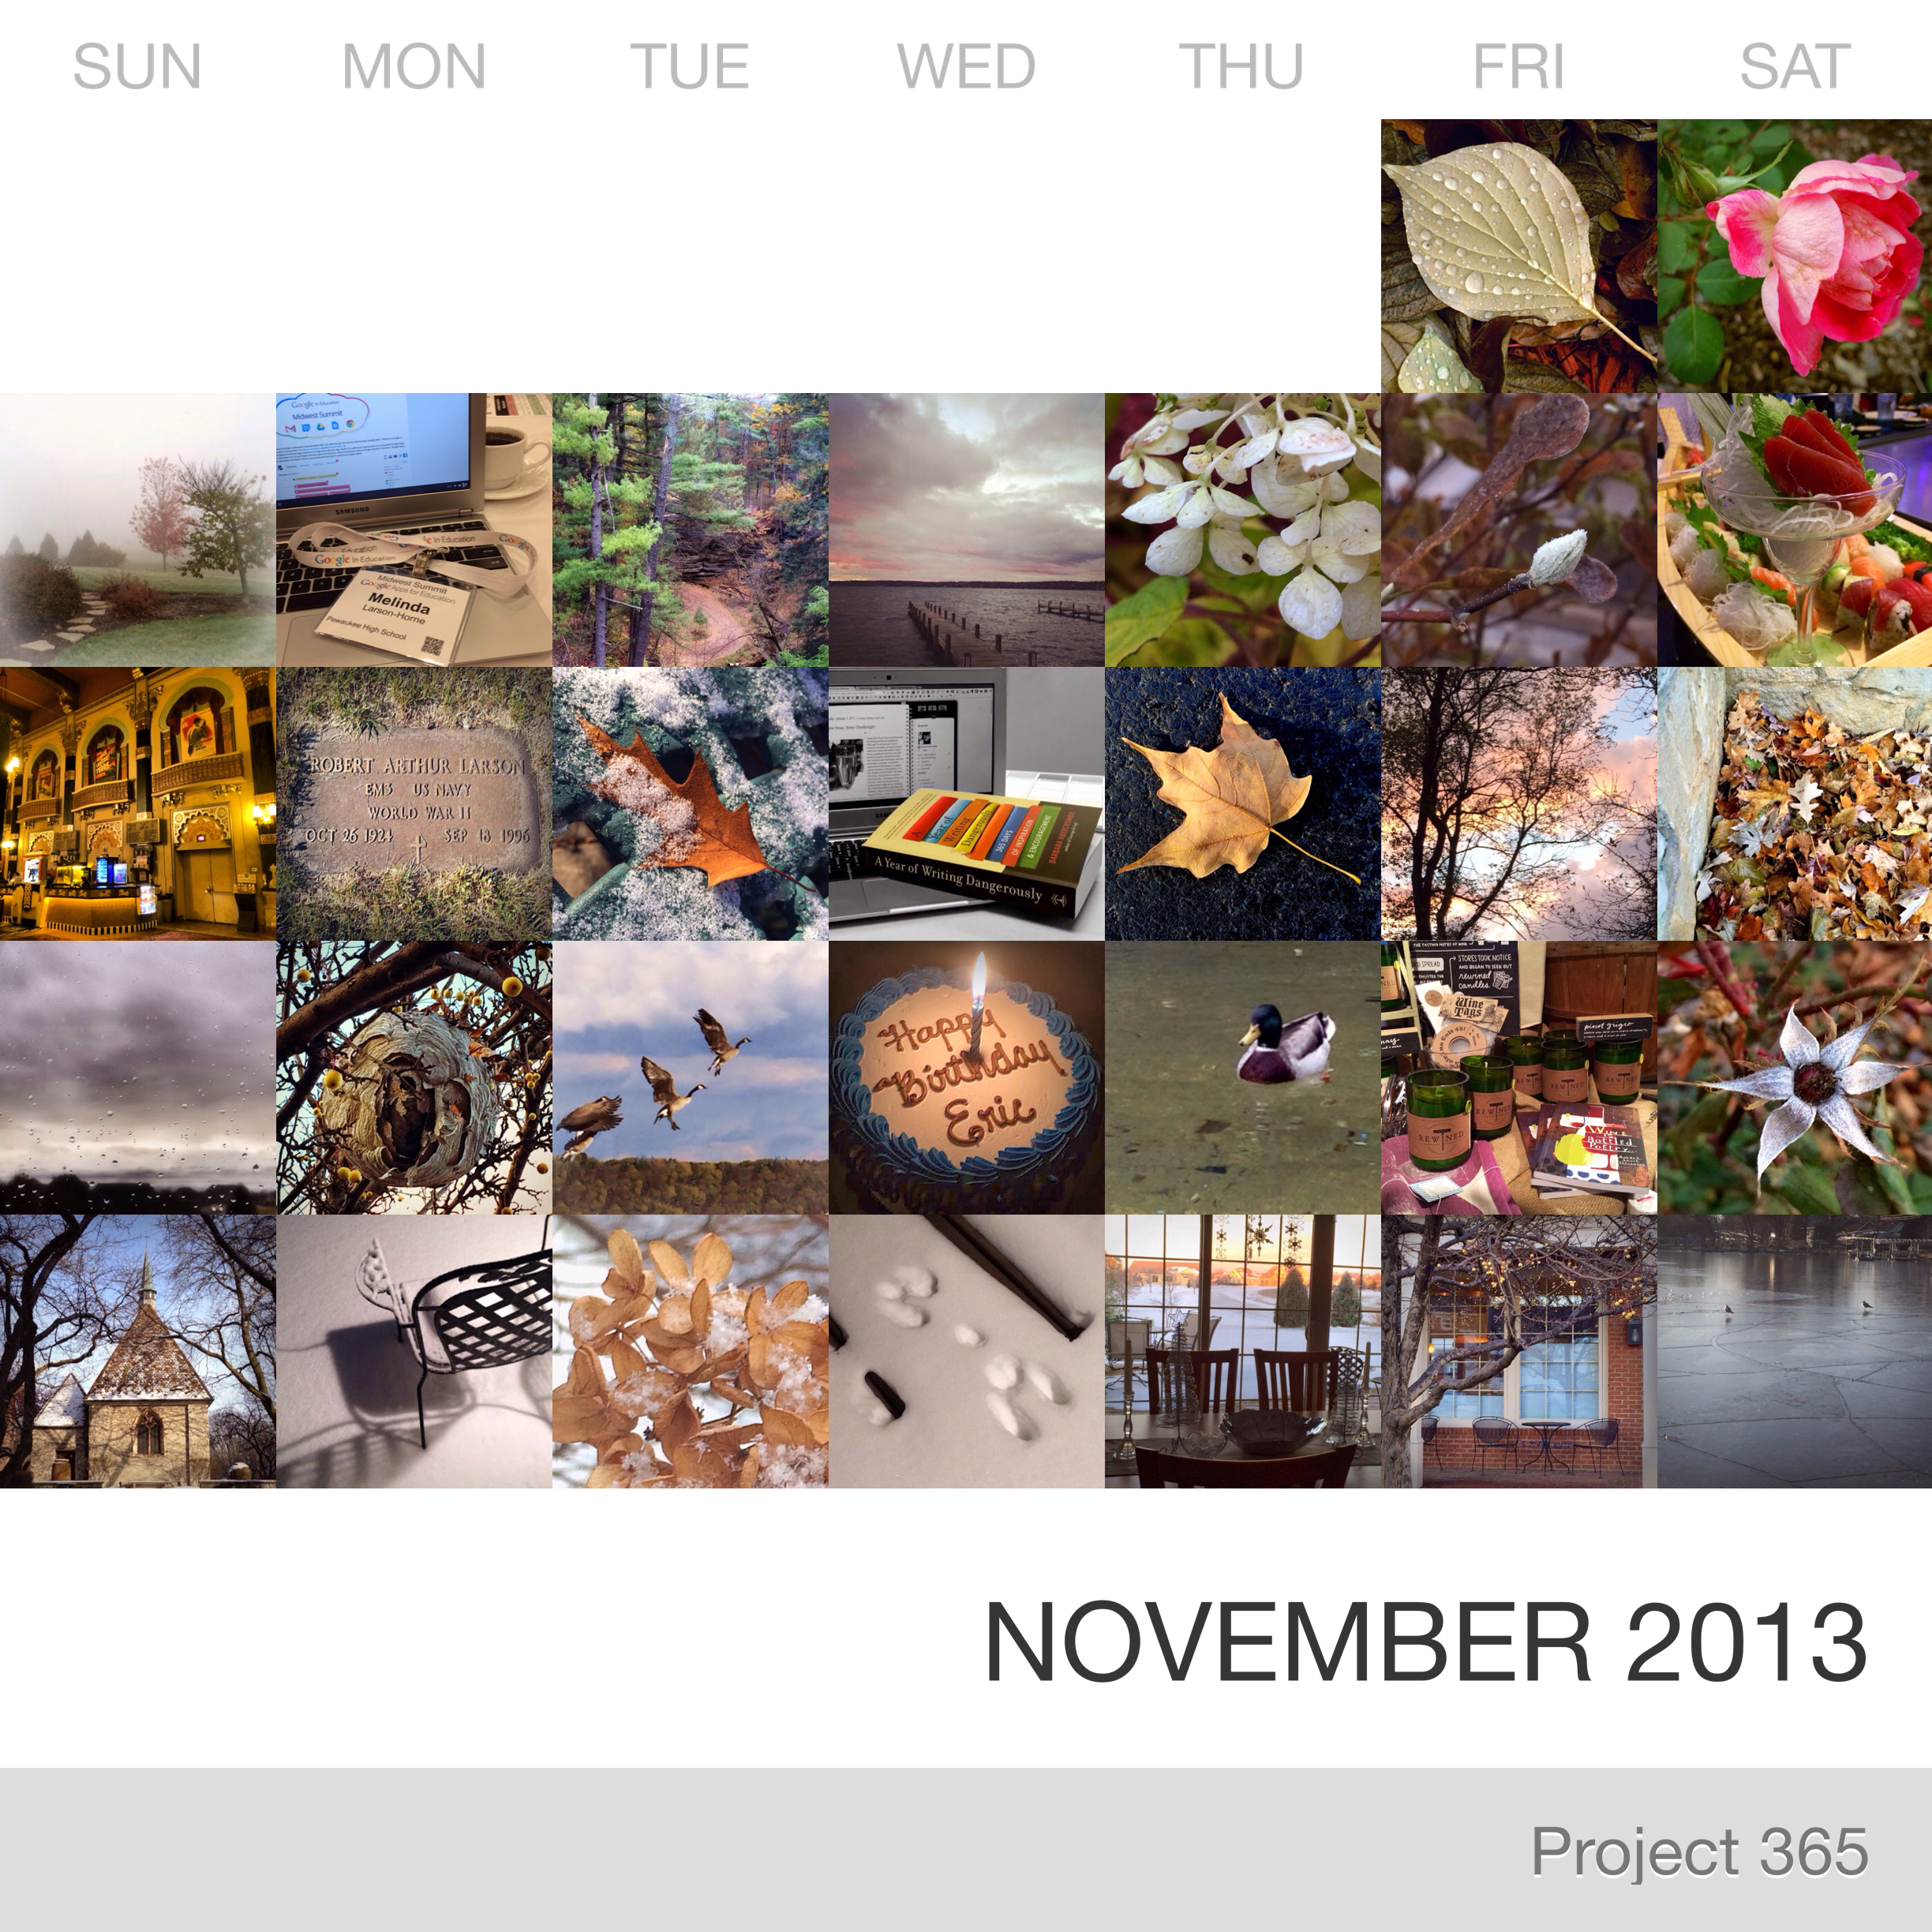 Project 365 _November-2013_Collage.jpg